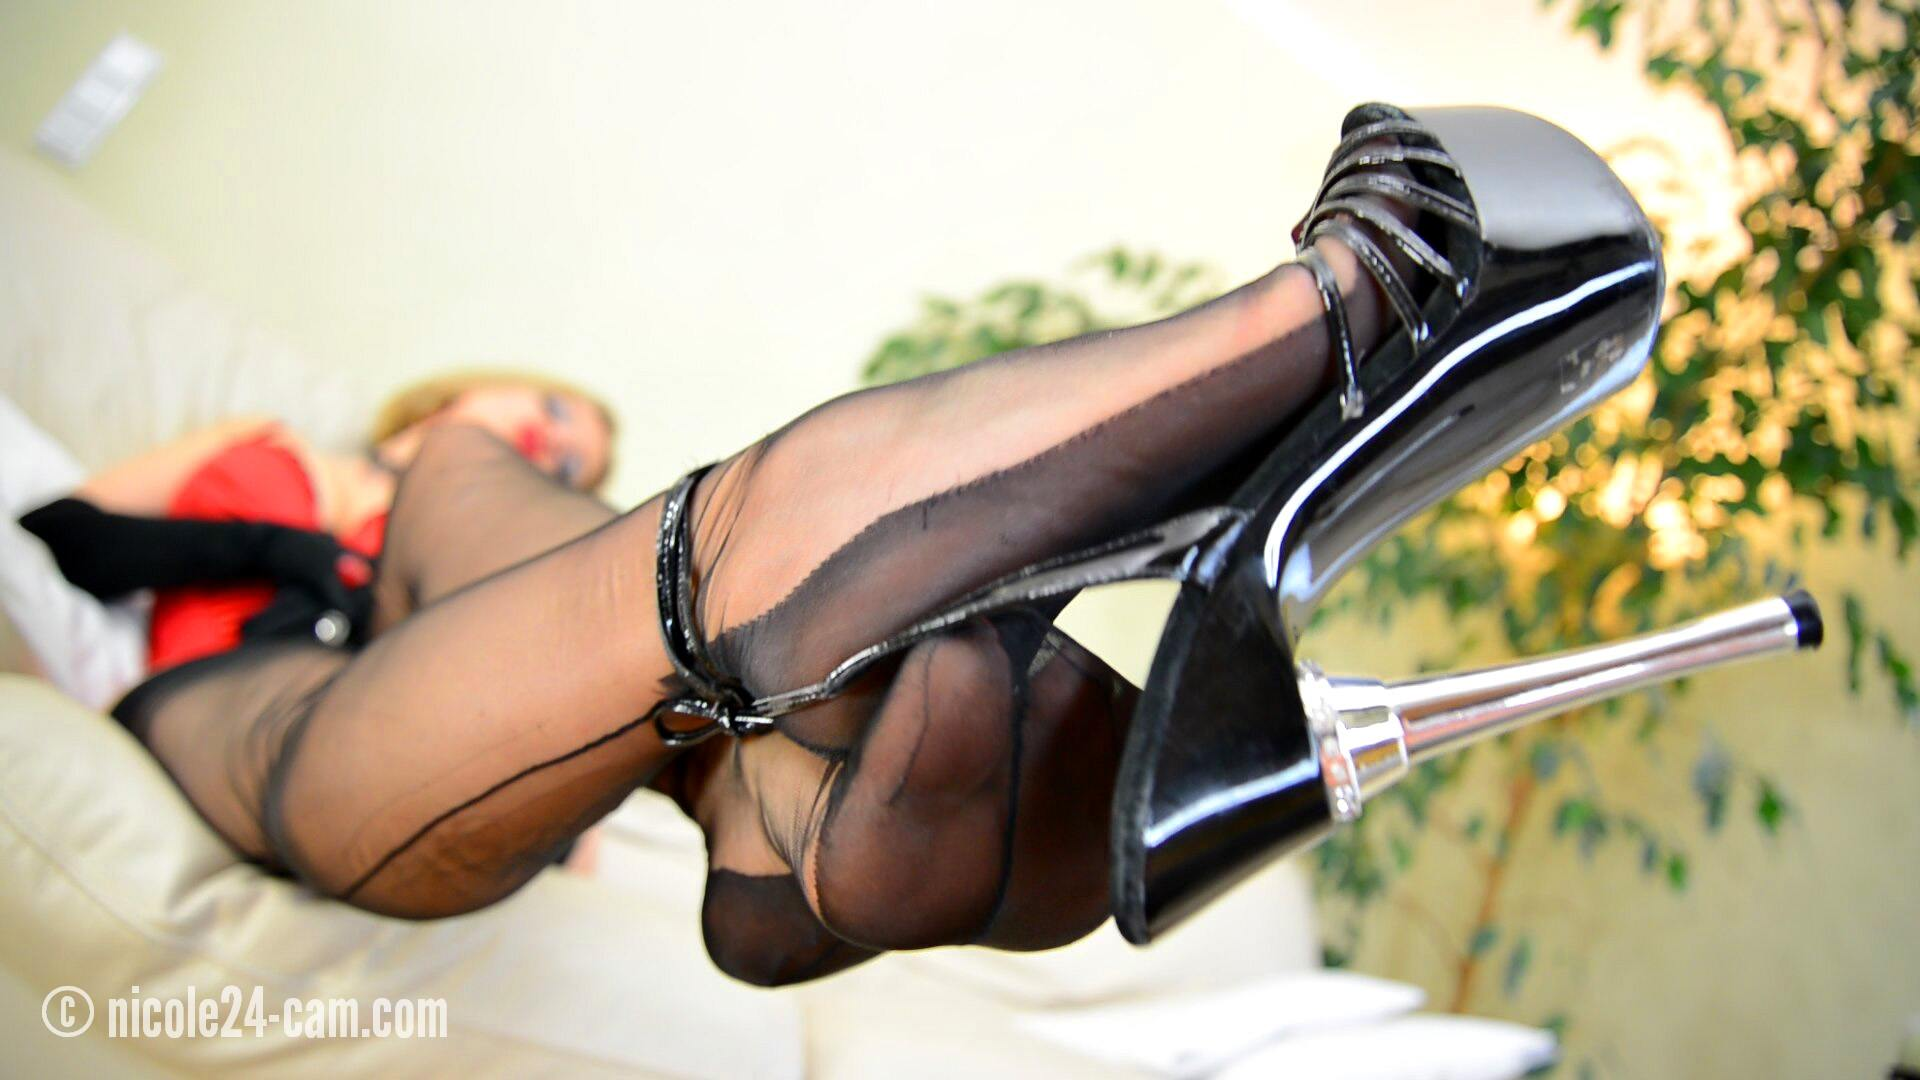 Dangling in High Heel Sandals and Stockings - Nicole24